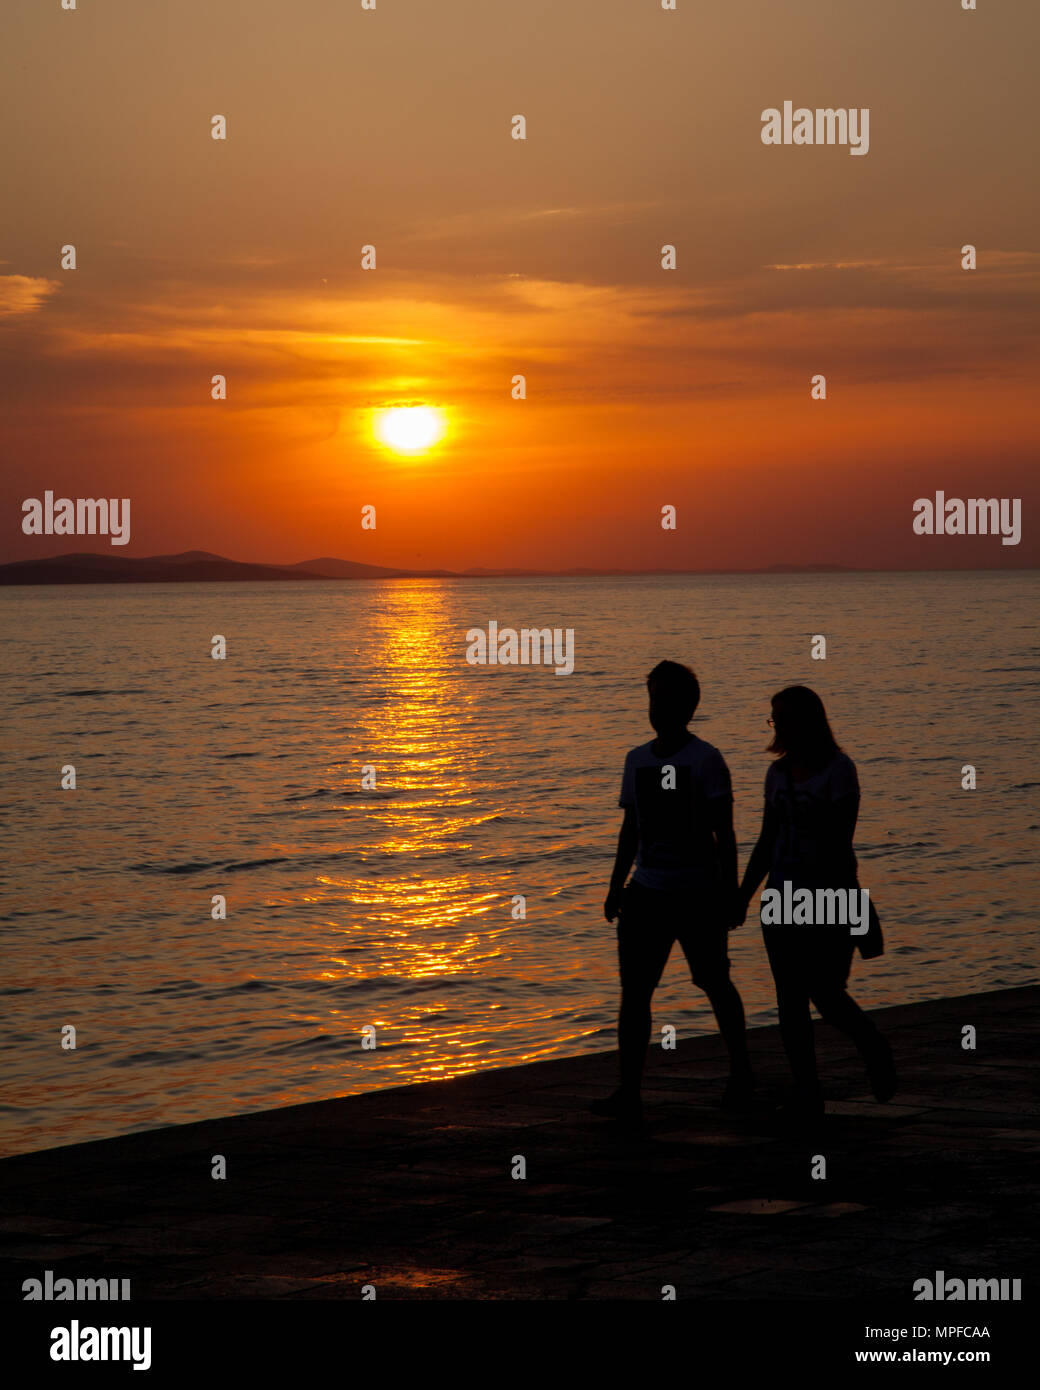 Man and woman watching beautiful glorious golden red and orange vivid vibrant sunset over the sea at the port of Zadar on the Adriatic coast Croatia - Stock Image